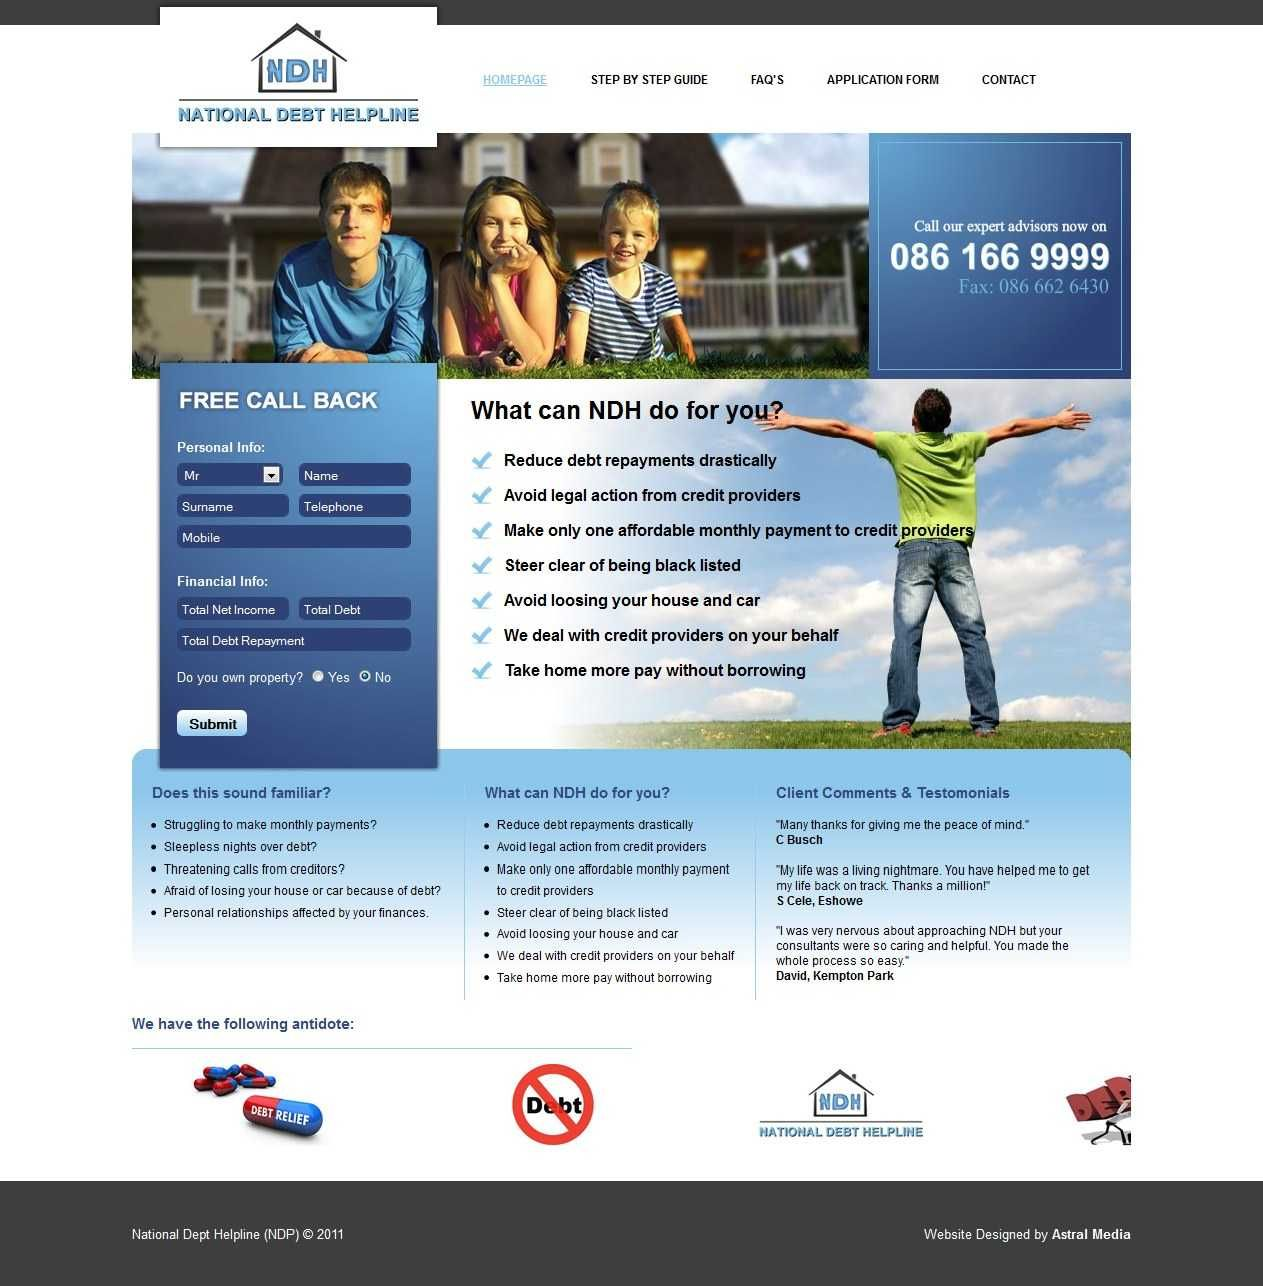 Website Designed Developed Reduce Debt National Debt Debt Repayment